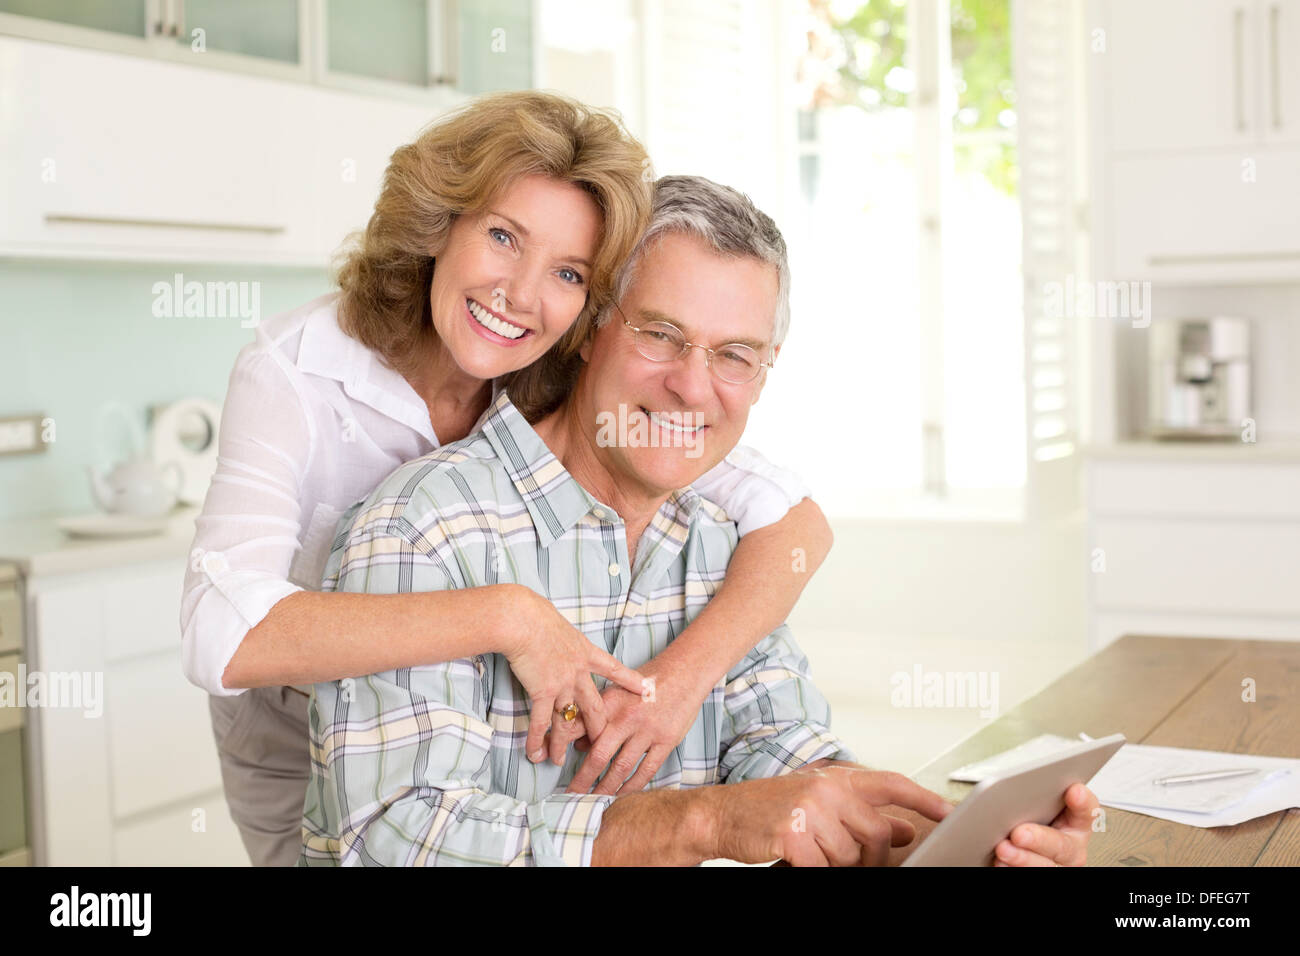 Portrait of smiling senior couple with digital tablet in kitchen - Stock Image